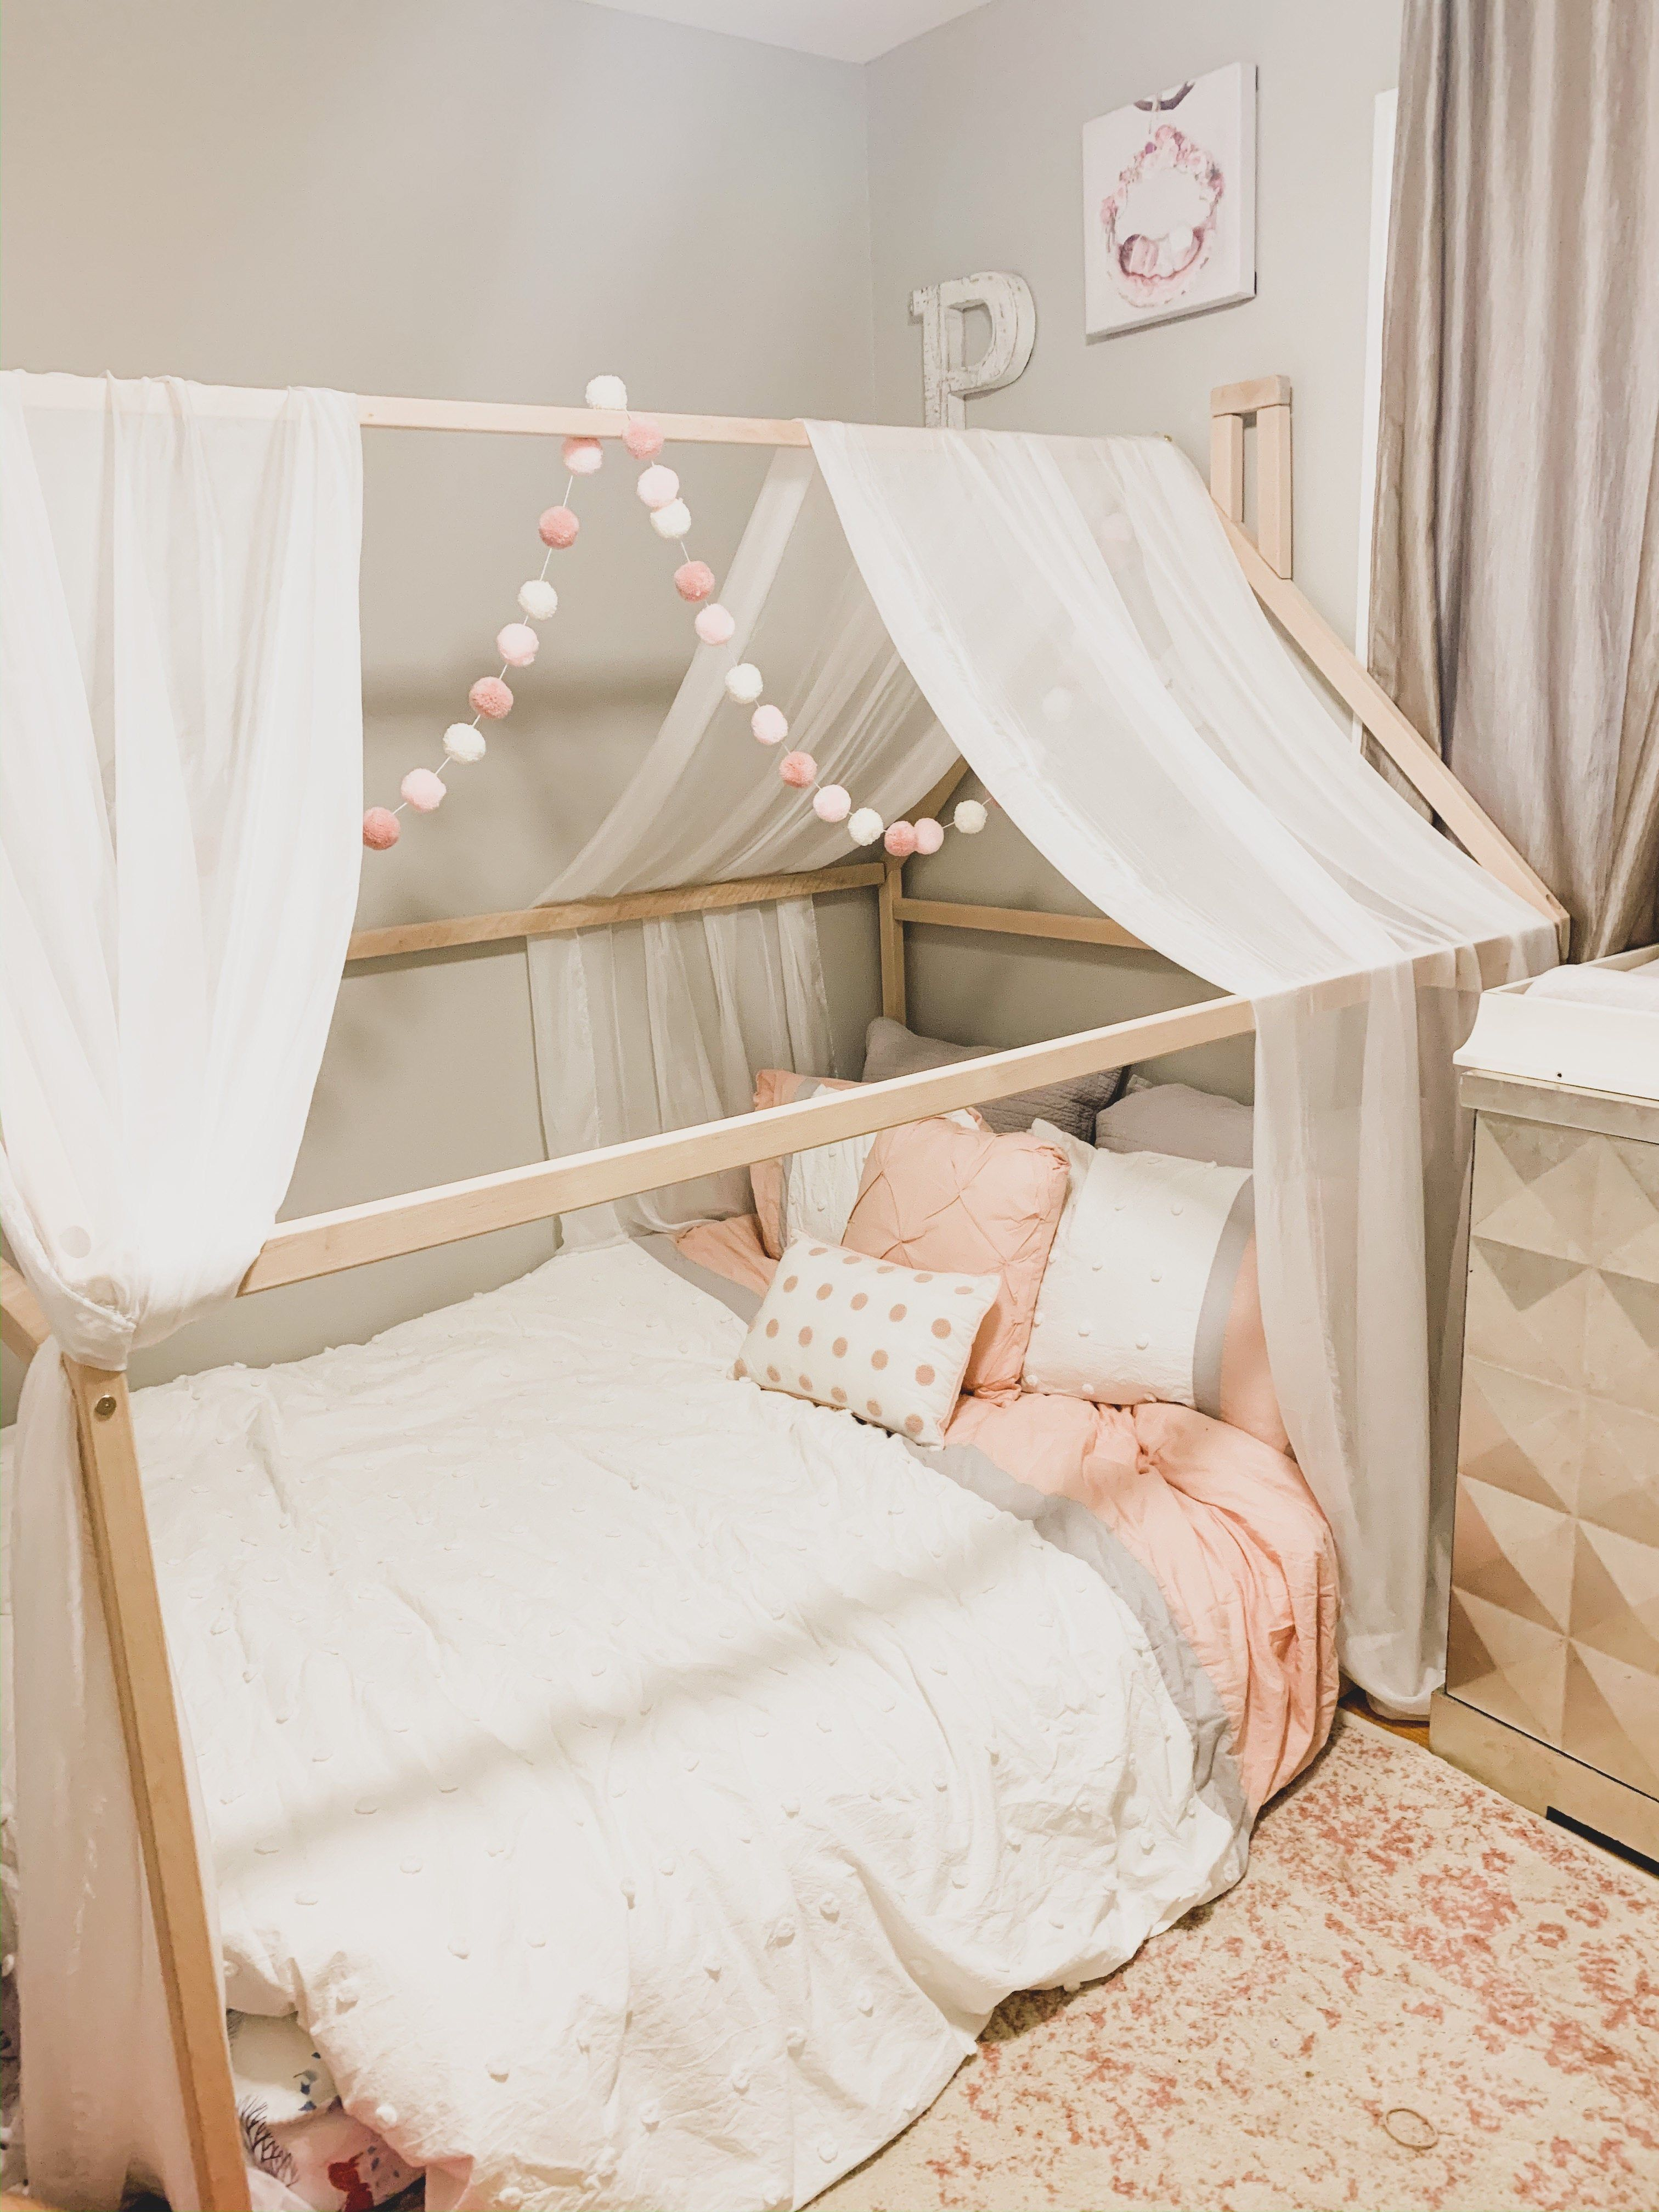 Wood Bed Full Double Toddler Bed Frame Tent Bed Wooden House Bed Frame Wood Nursery Bed House Baby Bed Wood Bed Kids Bed Gift Slats In 2020 House Frame Bed Toddler Bed